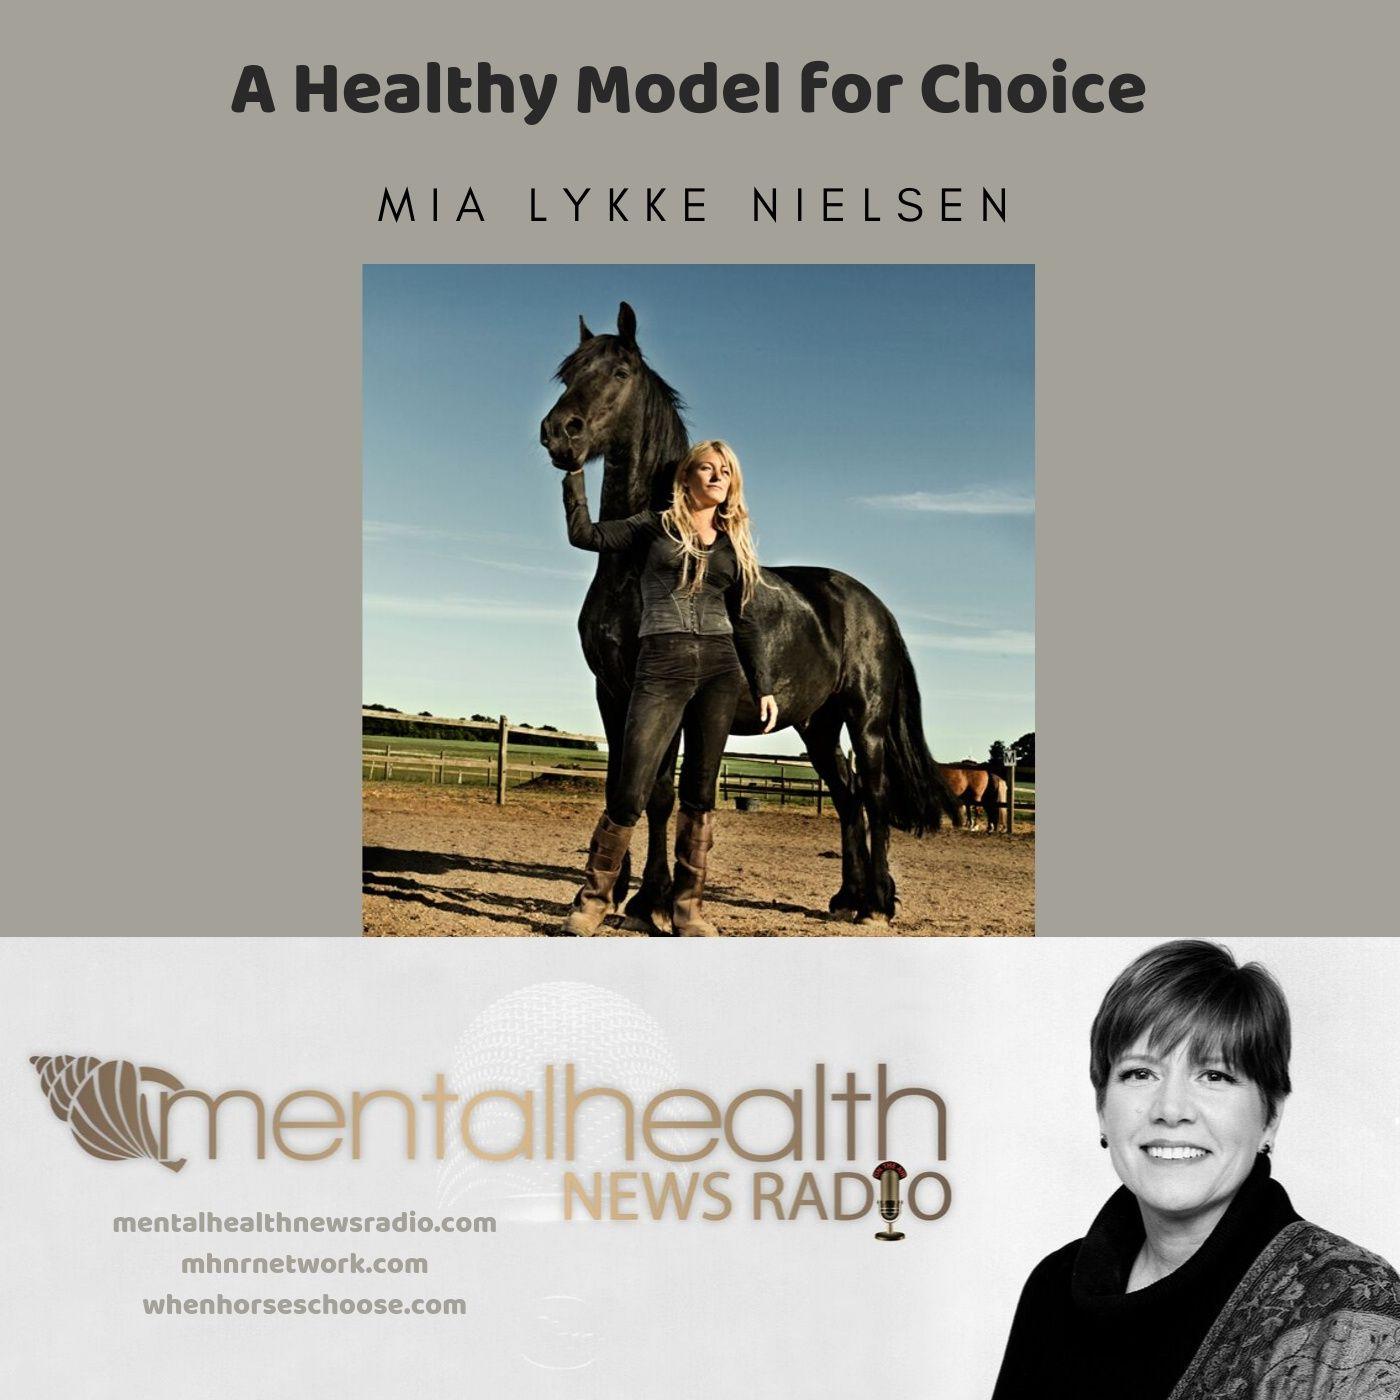 Mental Health News Radio - A Healthy Model for Choice with Mia Lykke Nielsen